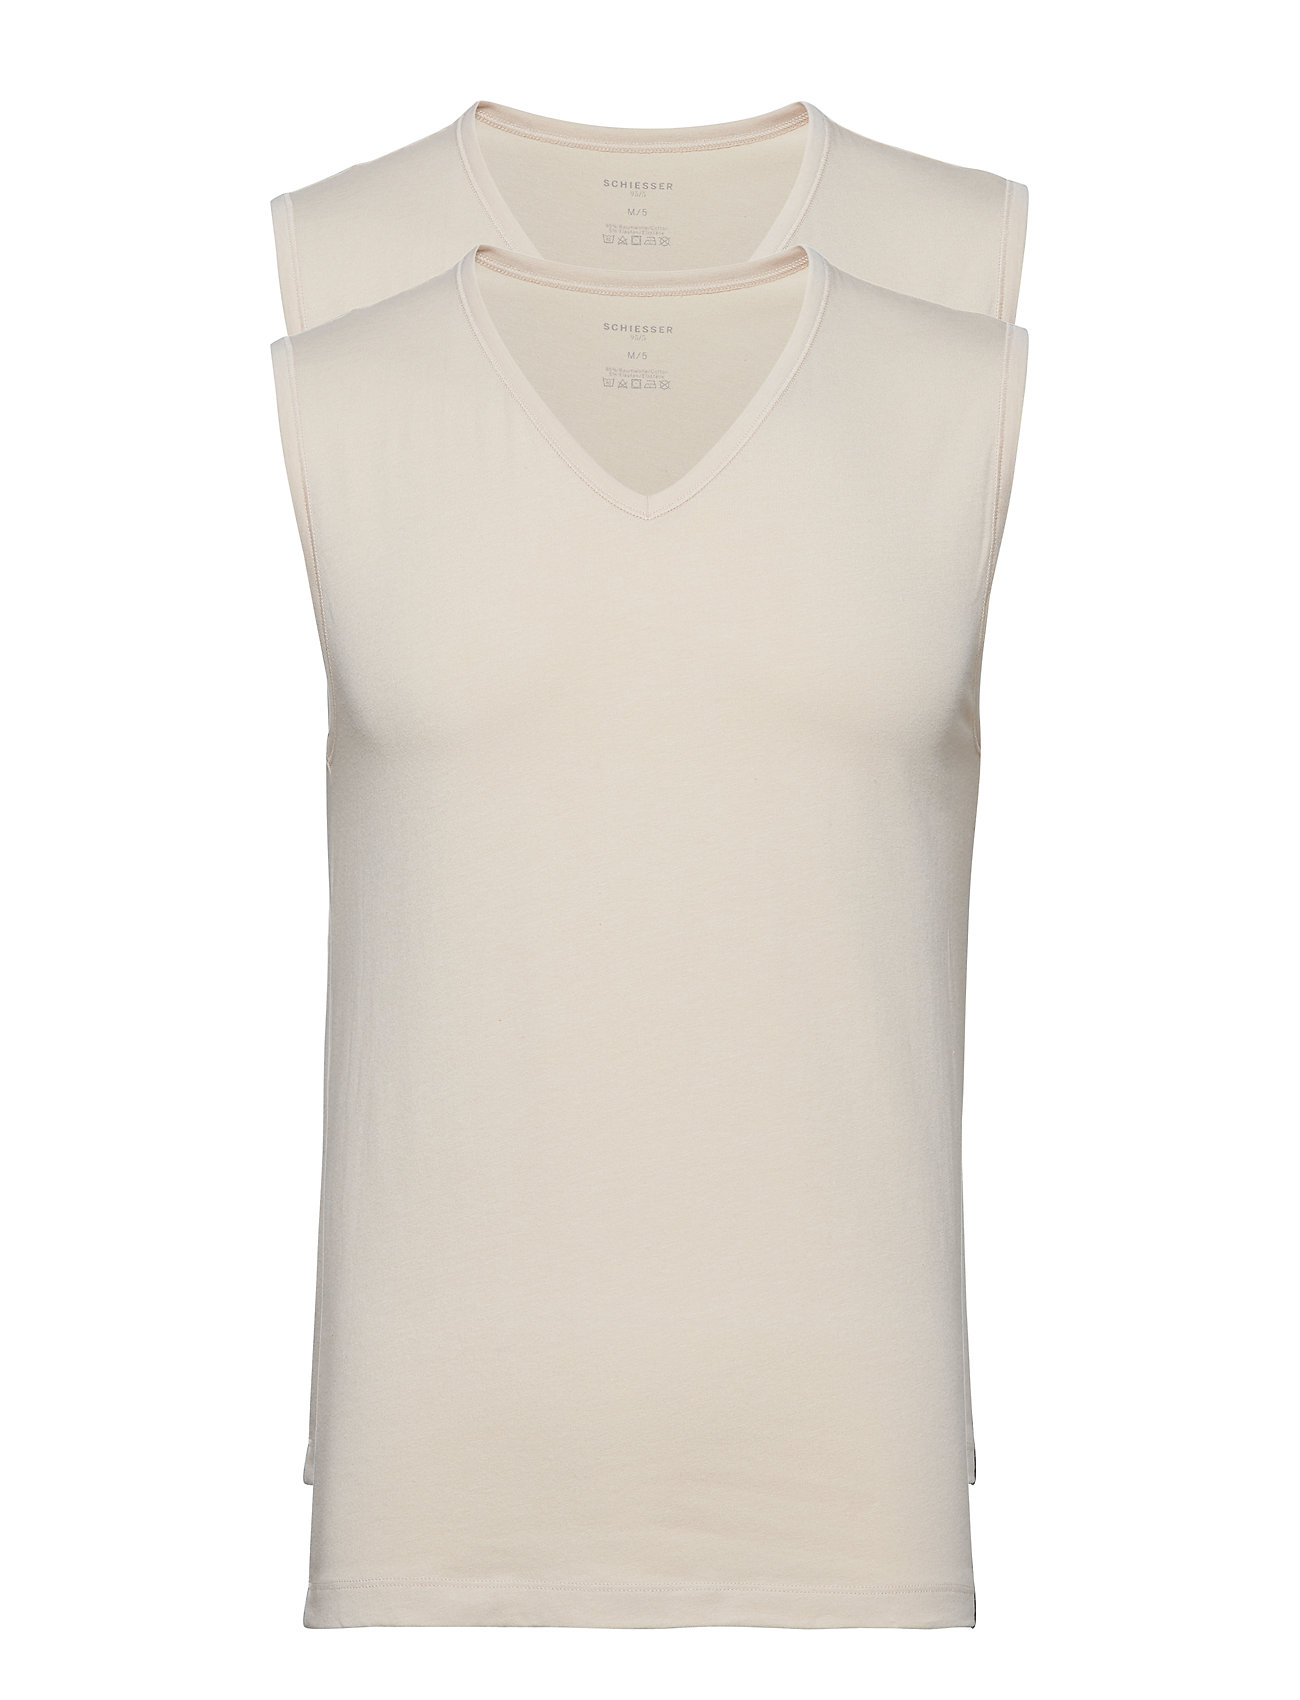 Image of Tank Top Underwear T-shirts Sleeveless Creme Schiesser (3136918047)